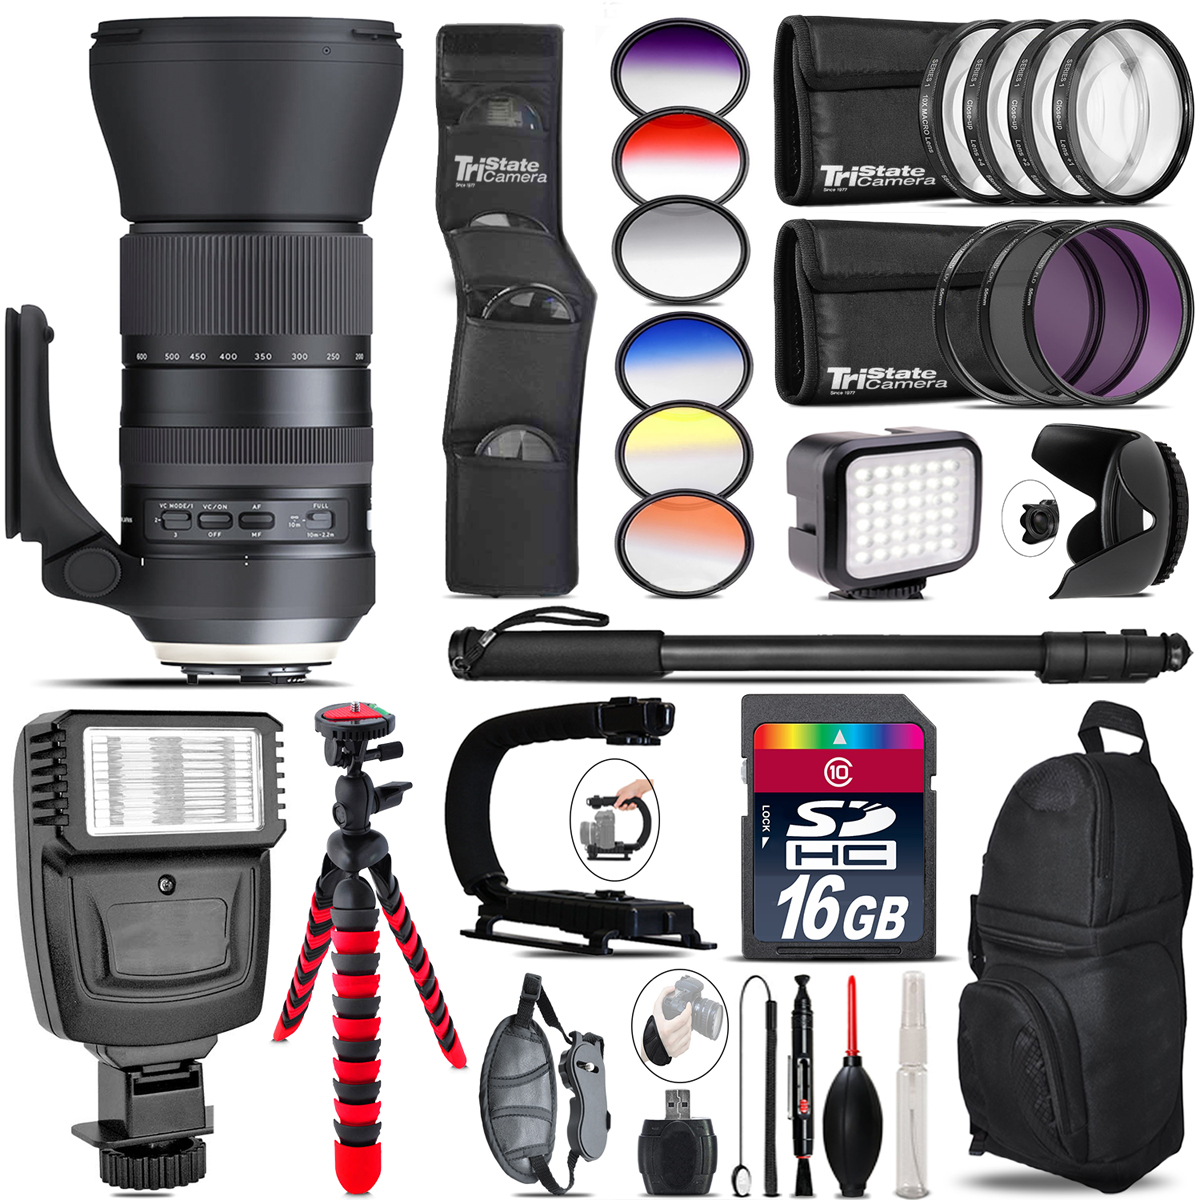 Tamron 150-600mm G2 for Canon + Color Set + LED Light - 16GB Accessory Bundle *FREE SHIPPING*